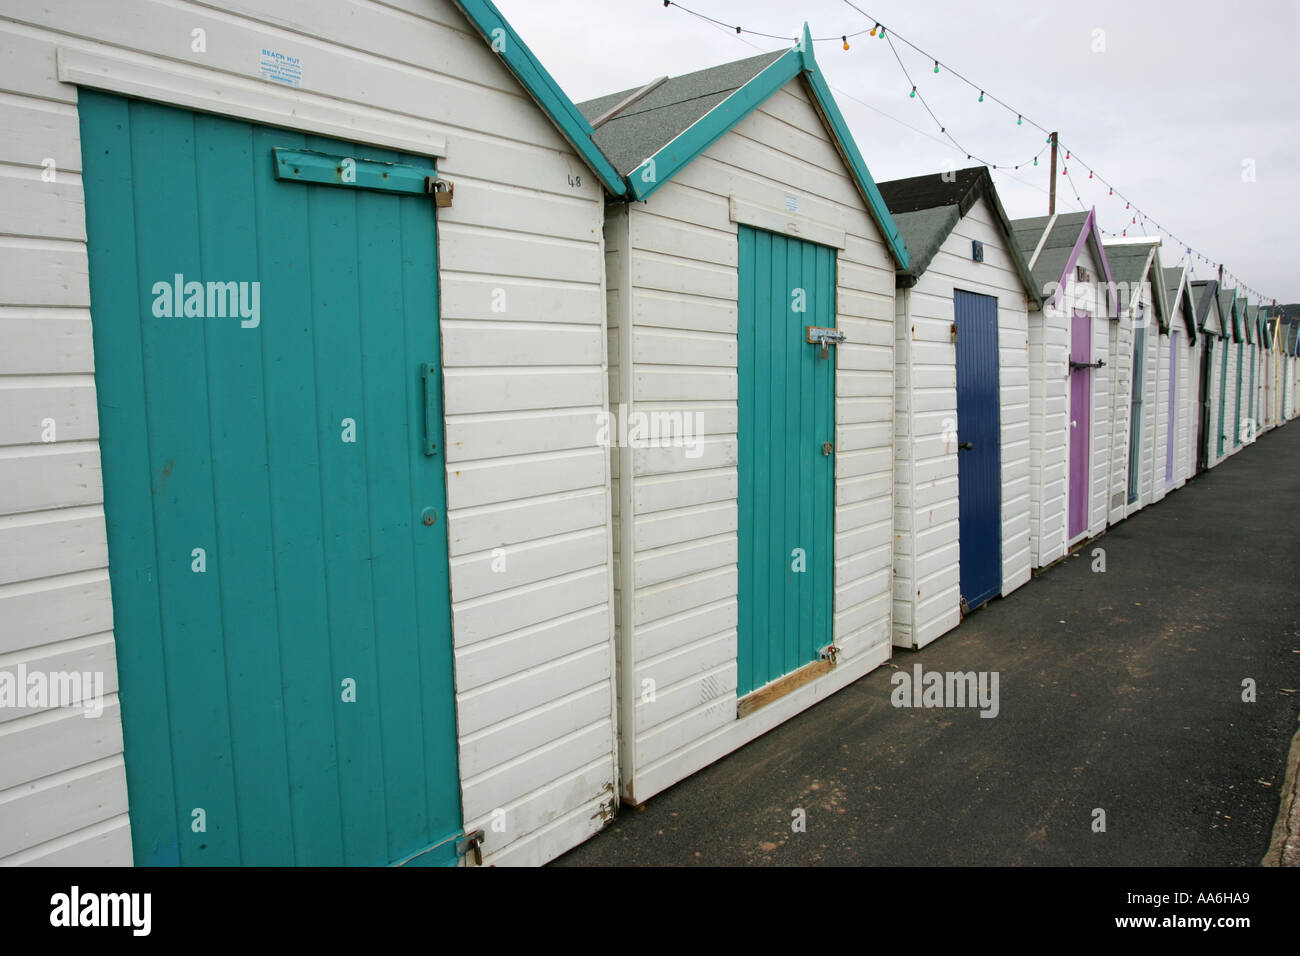 Long row line of white Victorian beach huts with brightly painted doors on Paignton seafront Devon England Britain & Long row line of white Victorian beach huts with brightly painted ...